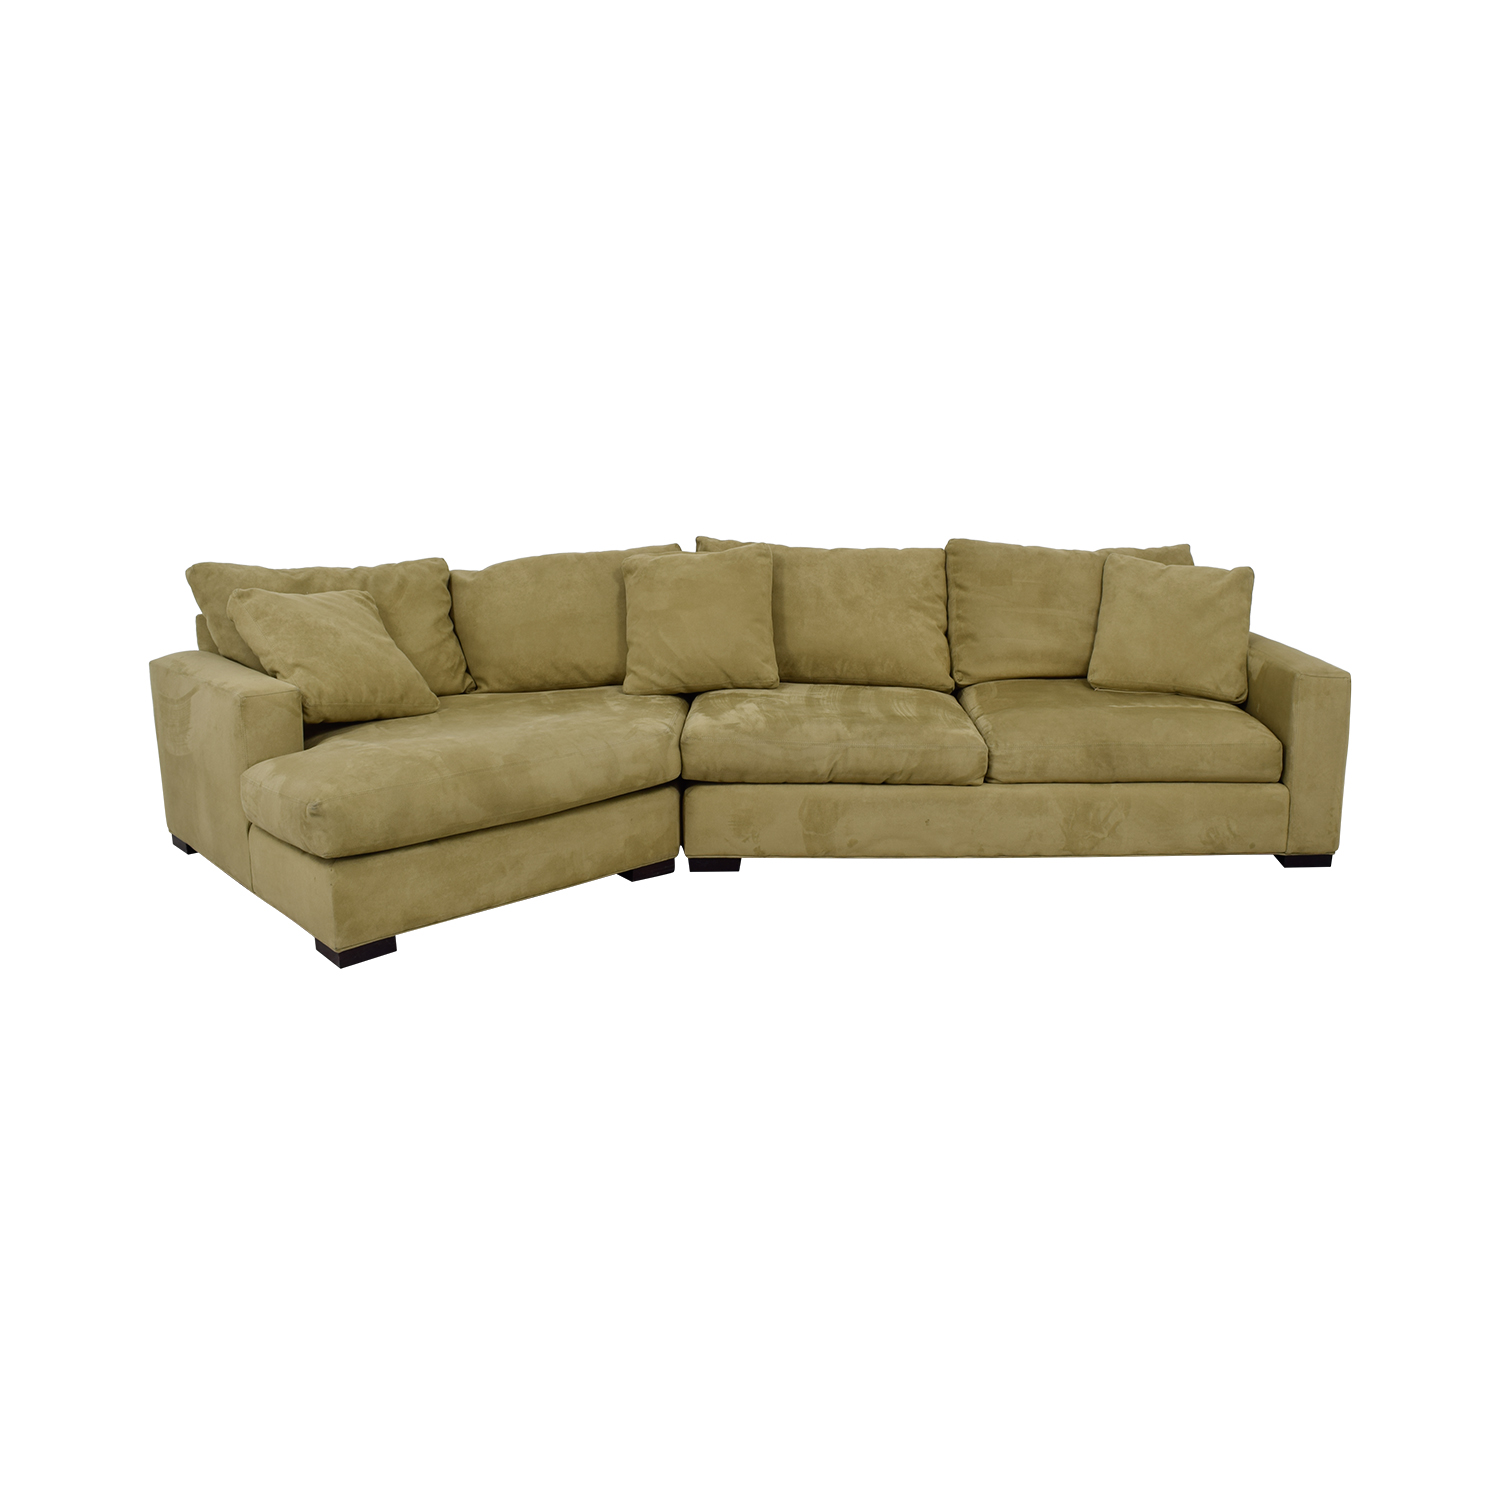 Room & Board Room & Board Beige Metro Sofa with Angled Chaise for sale